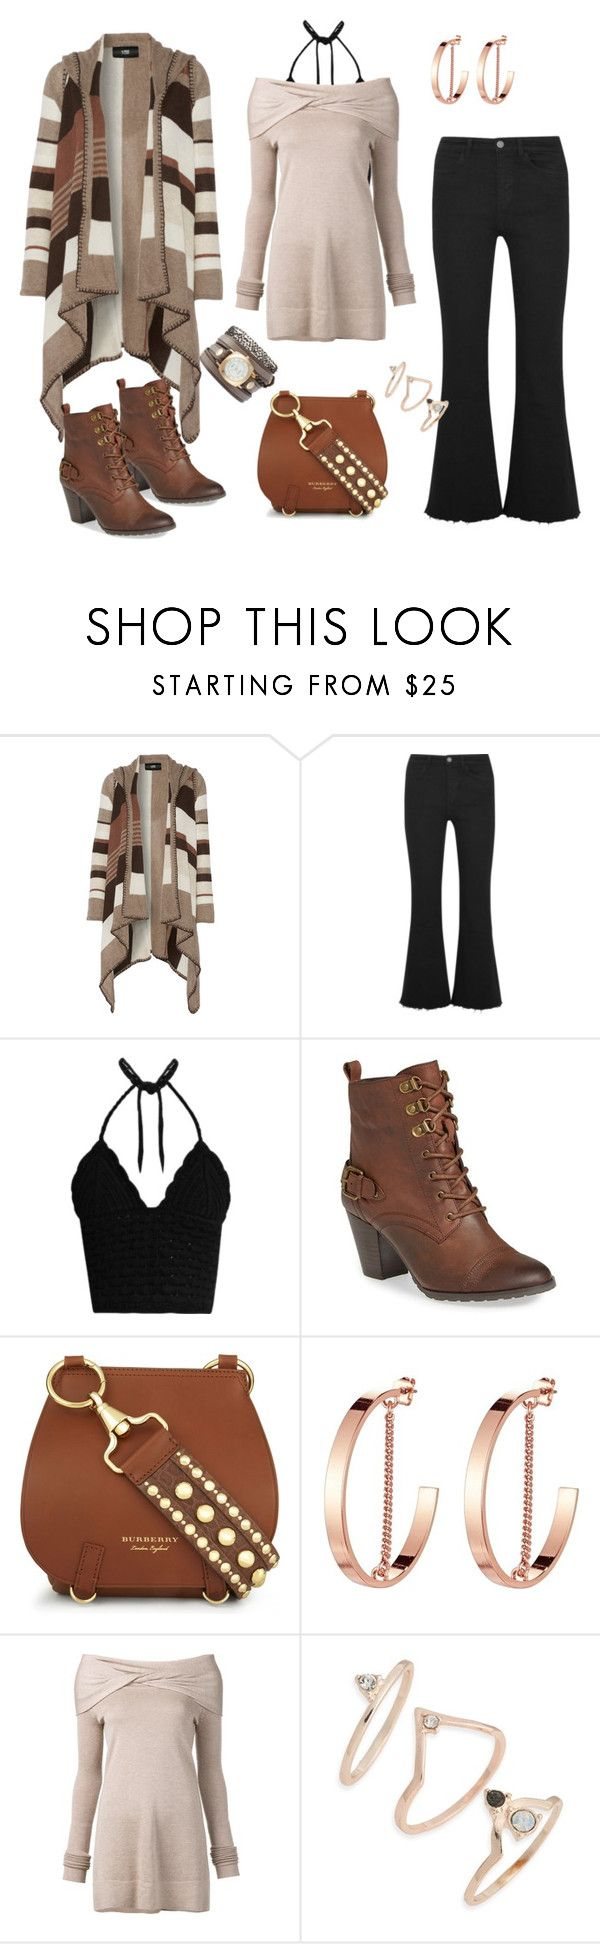 """Sem título #208"" by marlenewelke ❤ liked on Polyvore featuring Line, M.i.h Jeans, RED Valentino, Bella Vita, Burberry, Jenny Bird, Derek Lam, Topshop and La Mer"